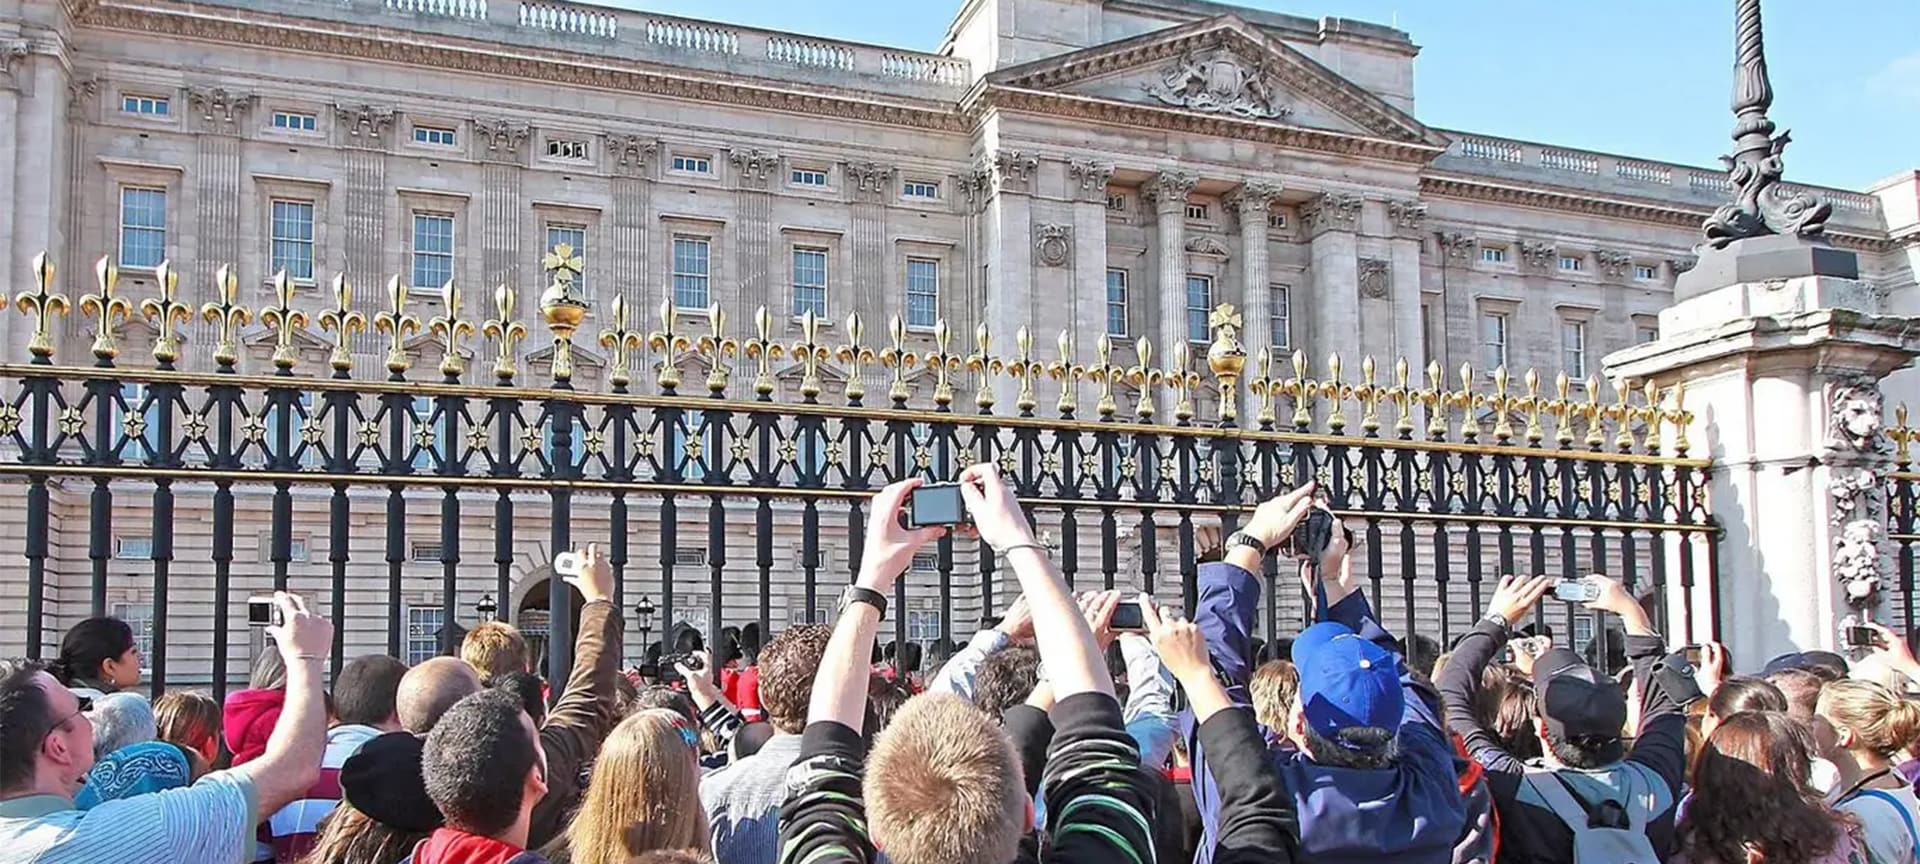 The number of visitors to London has soared since the 2012 Olympics. Royalty was the biggest draw for Americans, with Buckingham Palace coming top of a bucket list of experiences and the Queen named as the ultimate dream tour guide.